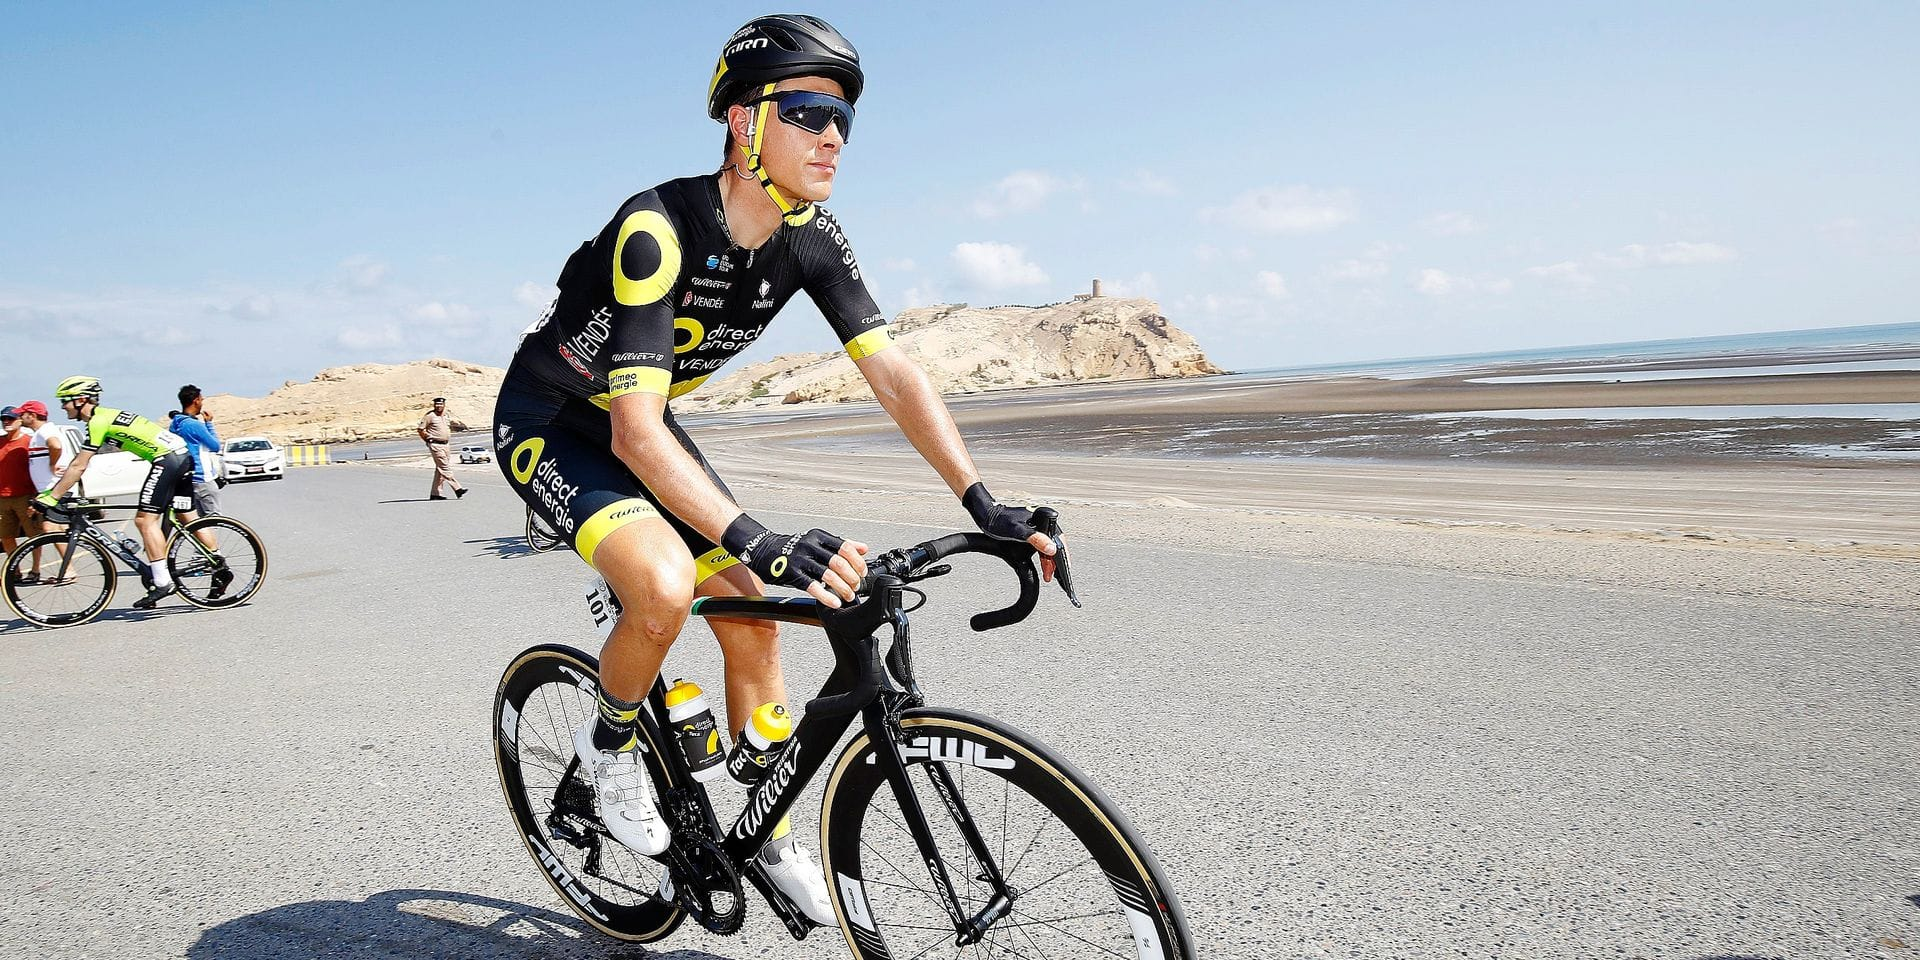 Tour of Oman 2019 - 10th Edition - 1st stage Al Sawadi Beach - Suhar Corniche 138,5 km - 16/02/2019 - Niki Terpstra (NED - Direct Energie) - photo Luca Bettini/BettiniPhoto©2019 ! only BELGIUM !